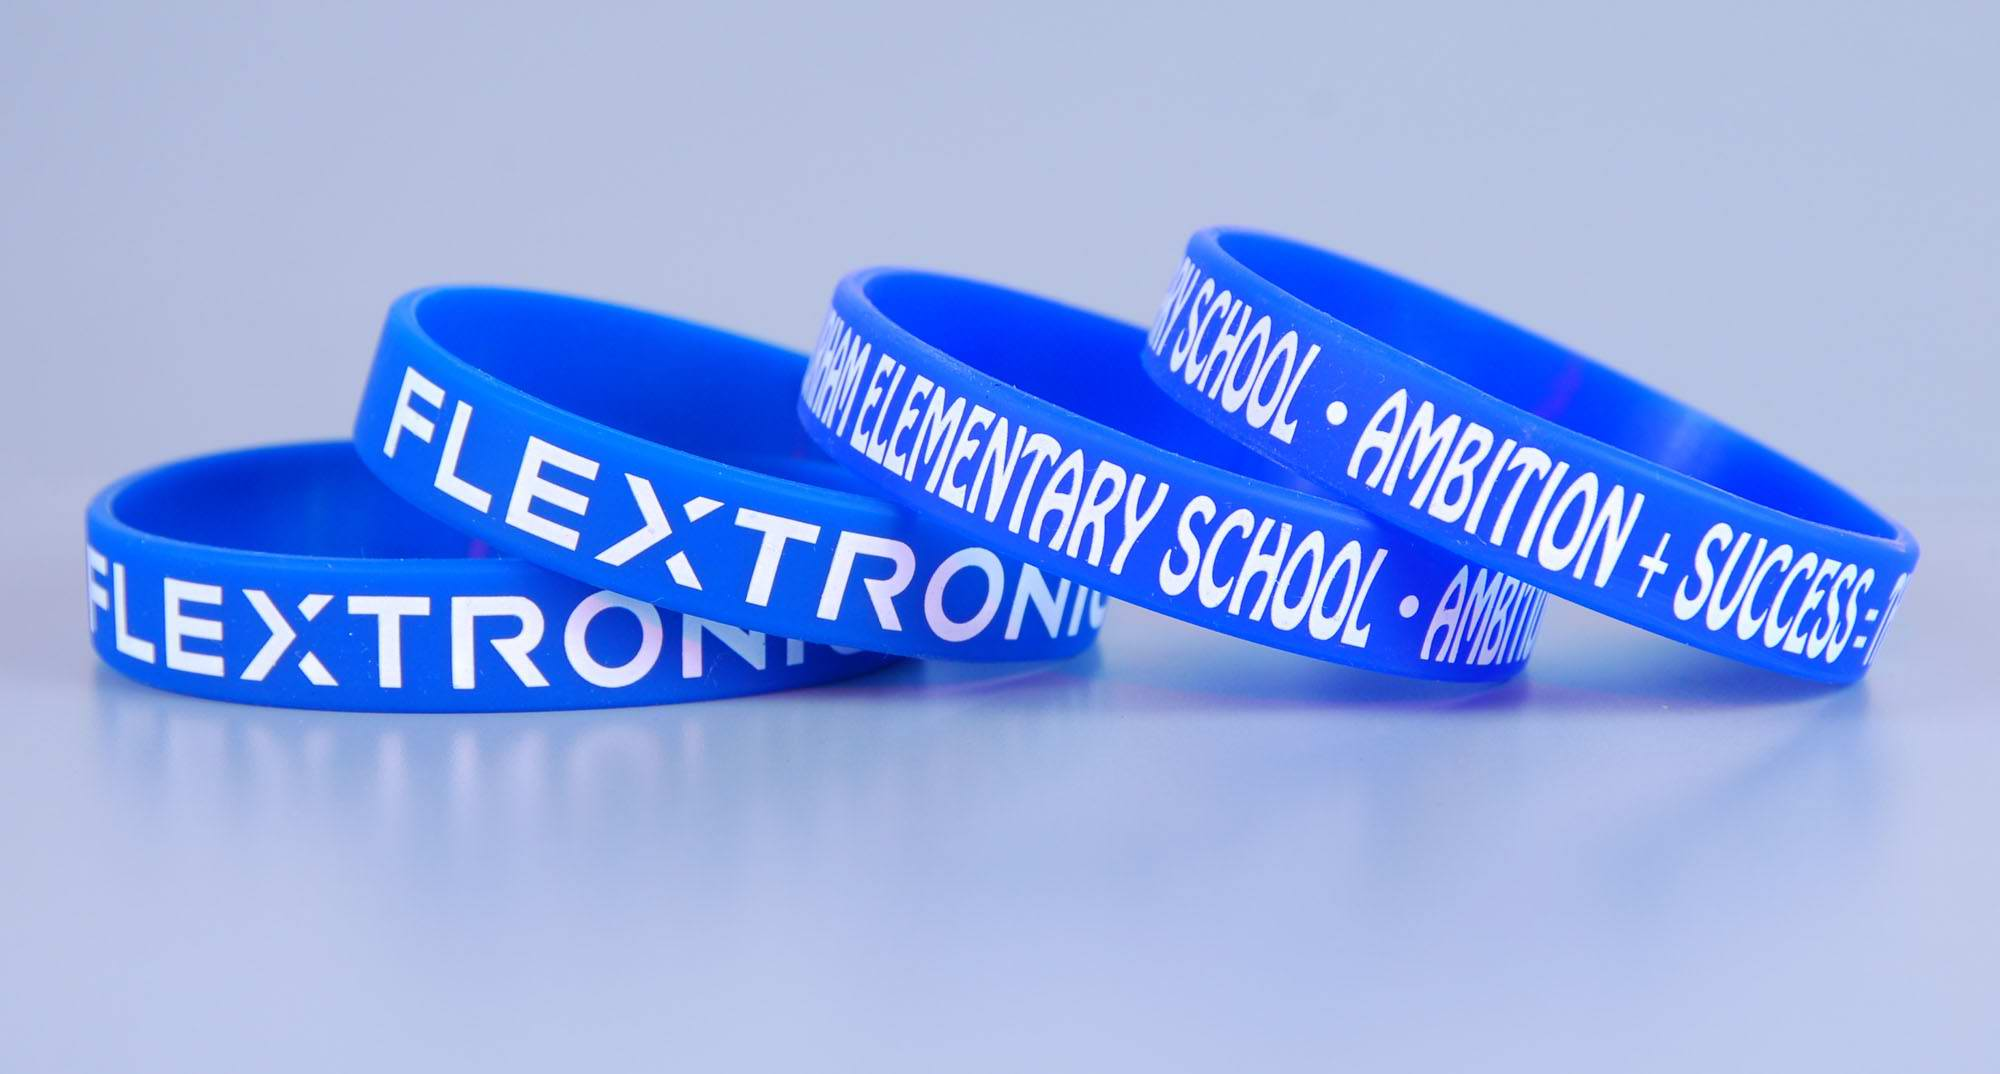 Custom shape silicone bracelets for school